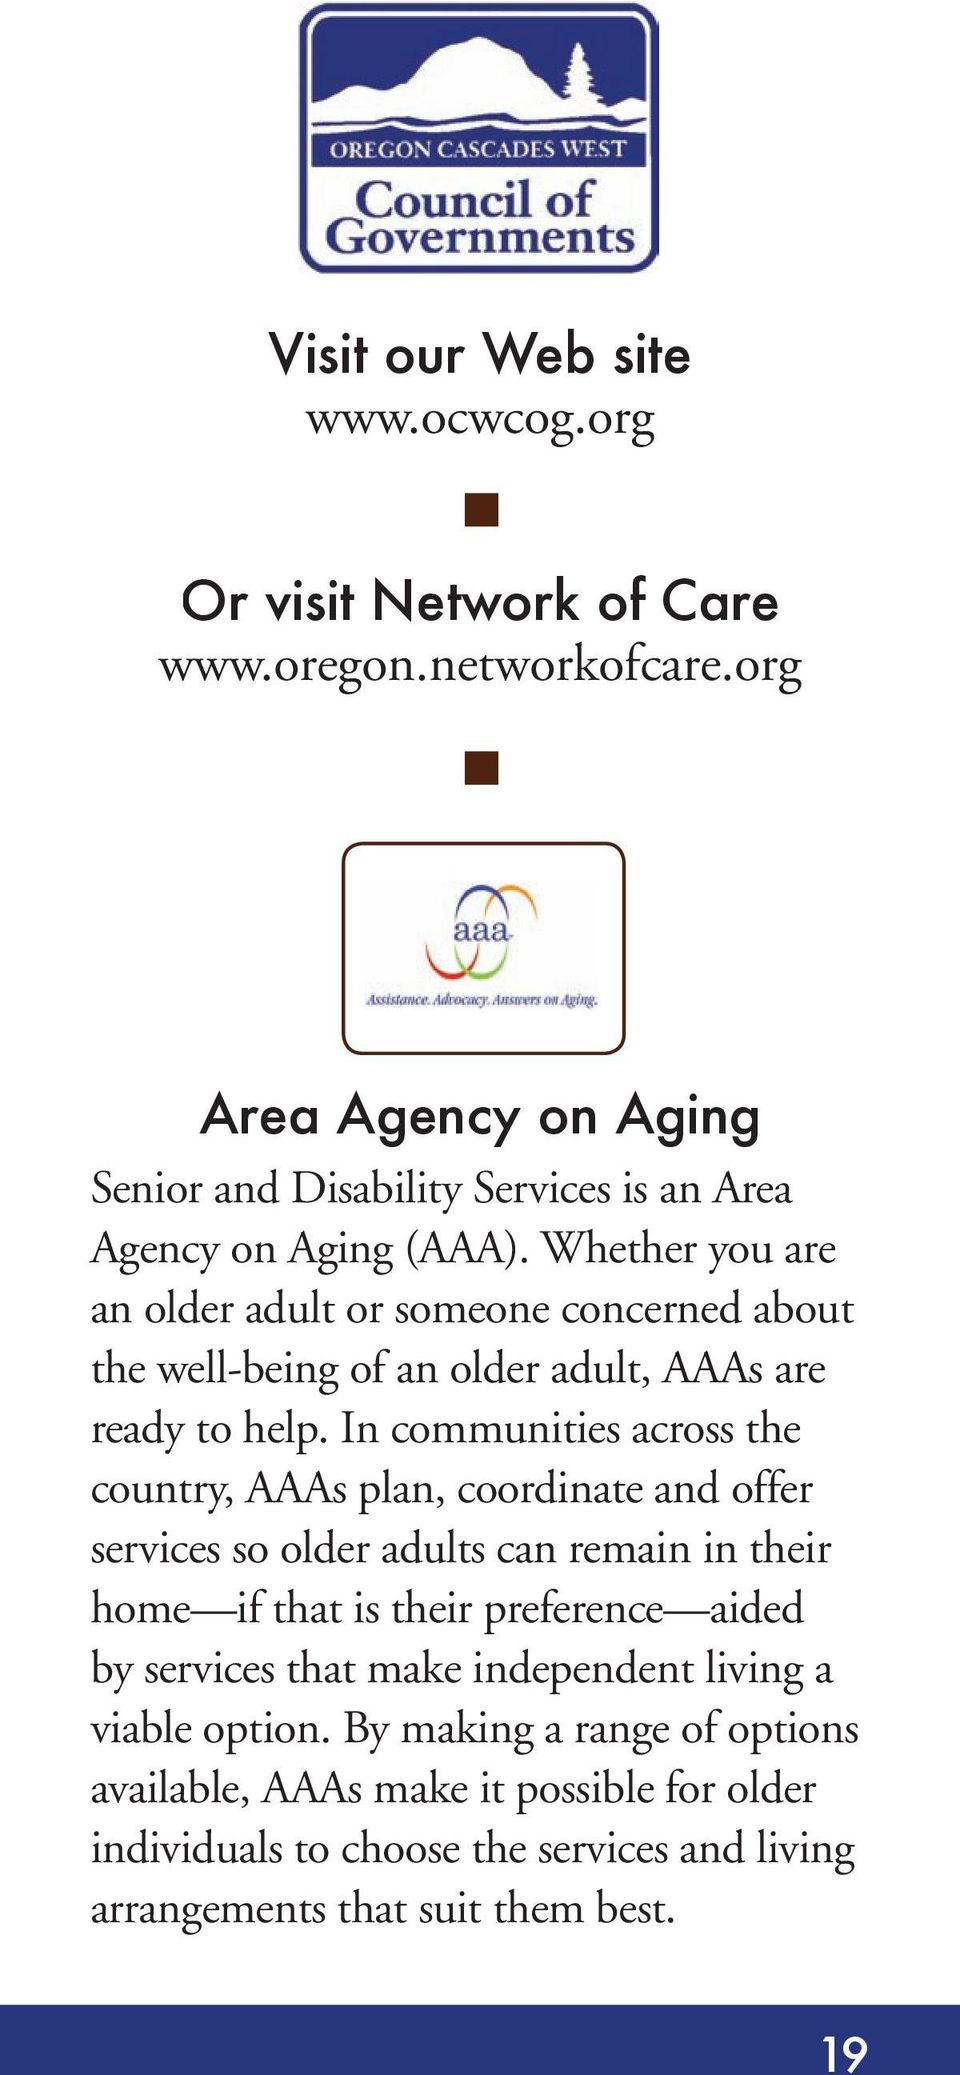 Whether you are an older adult or someone concerned about the well-being of an older adult, AAAs are ready to help.